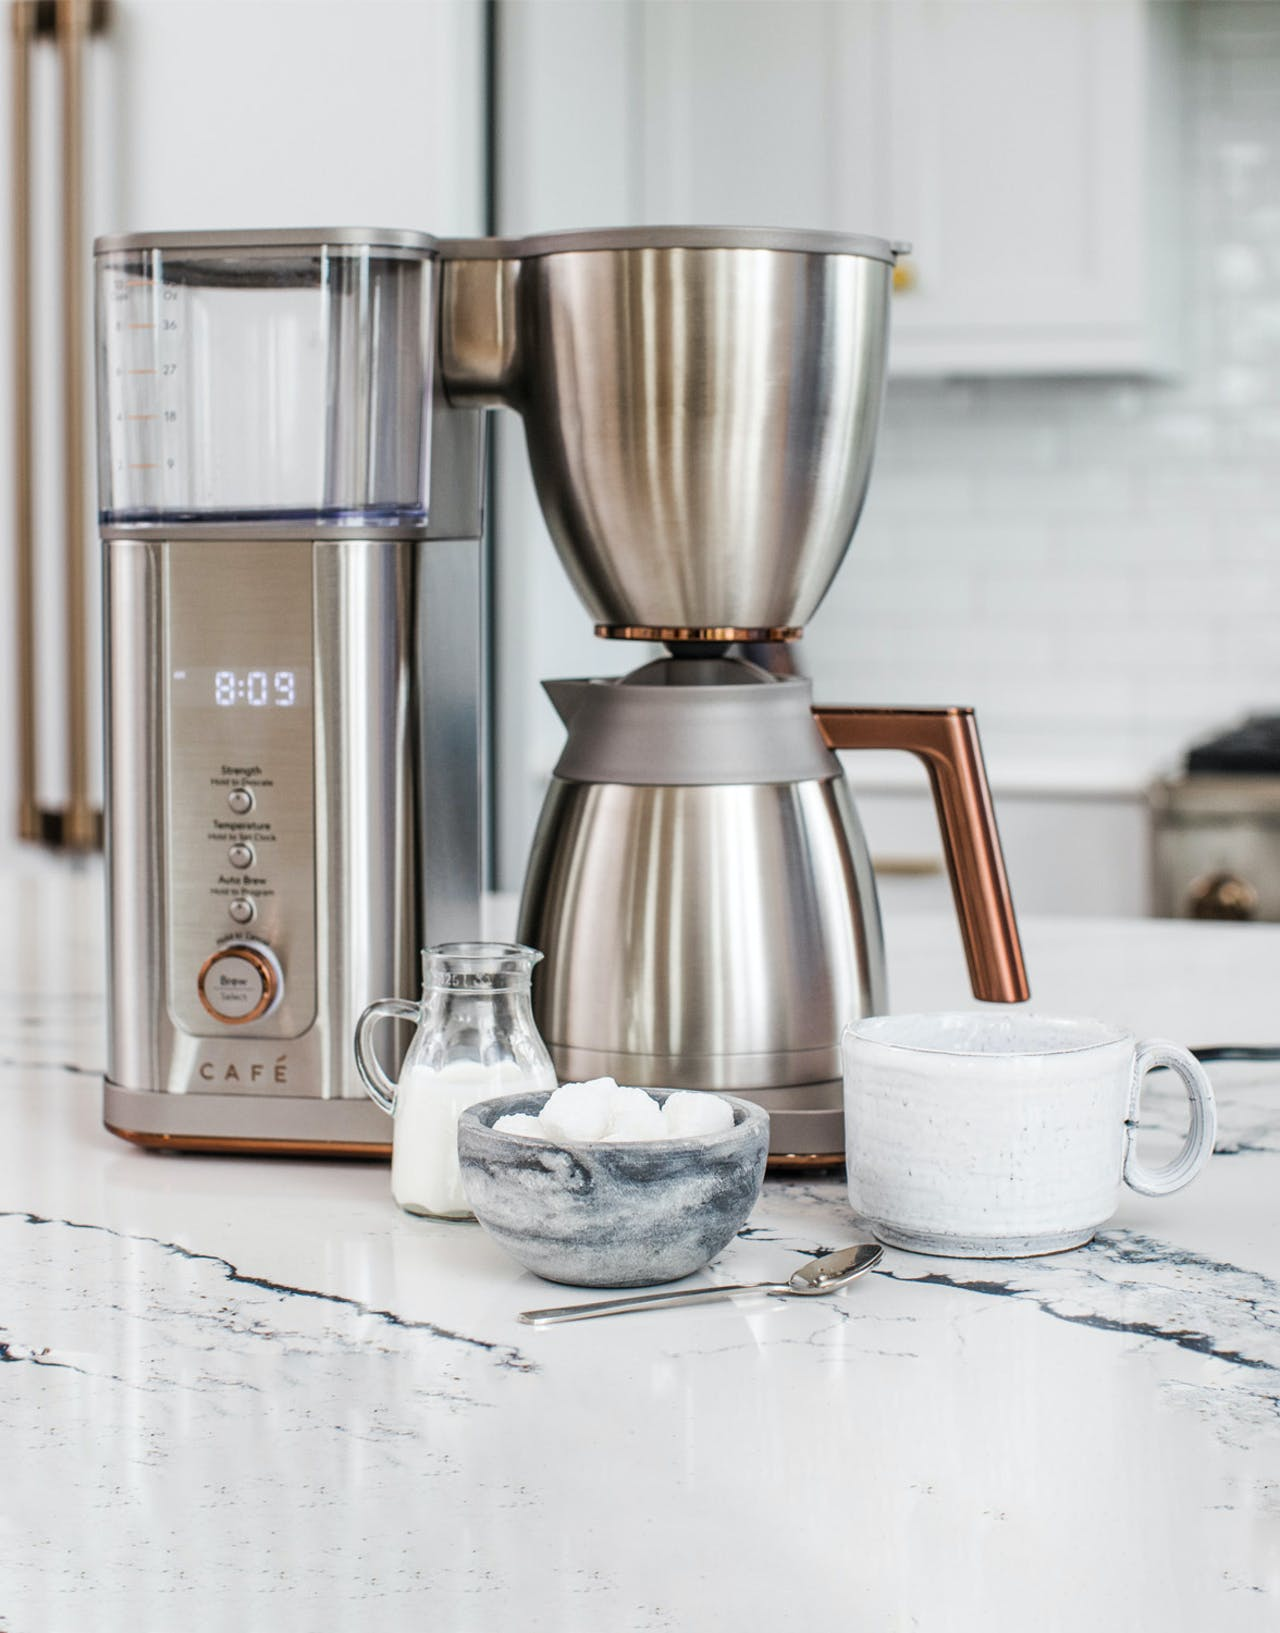 Stainless steel cafe coffee maker on counter